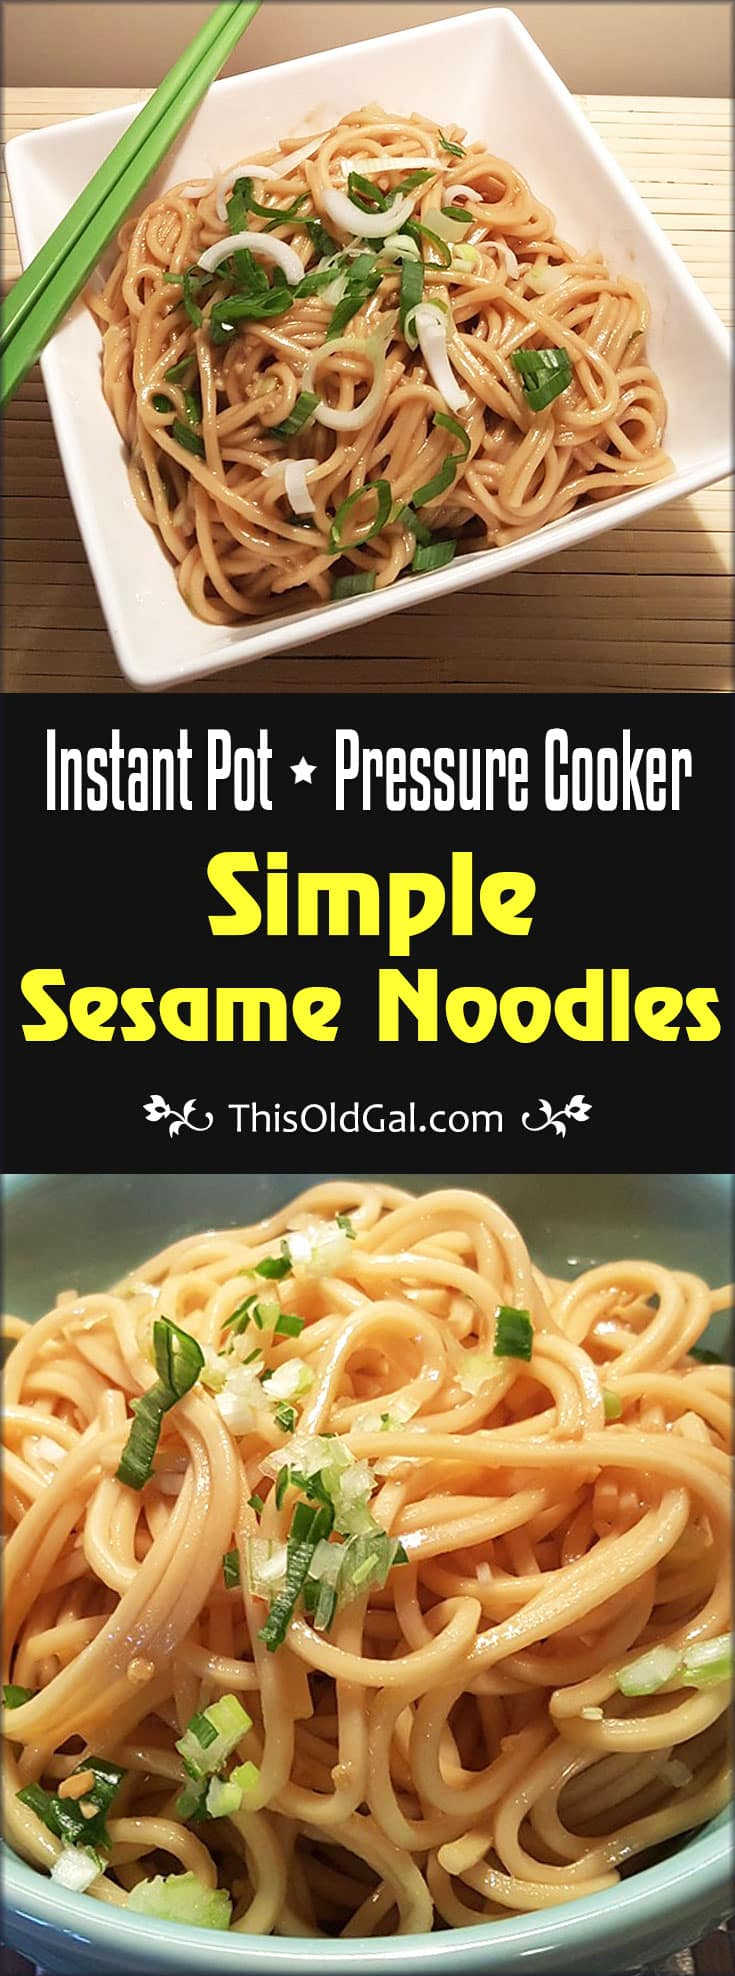 Stove or Pressure Cooker Simple Sesame Noodles